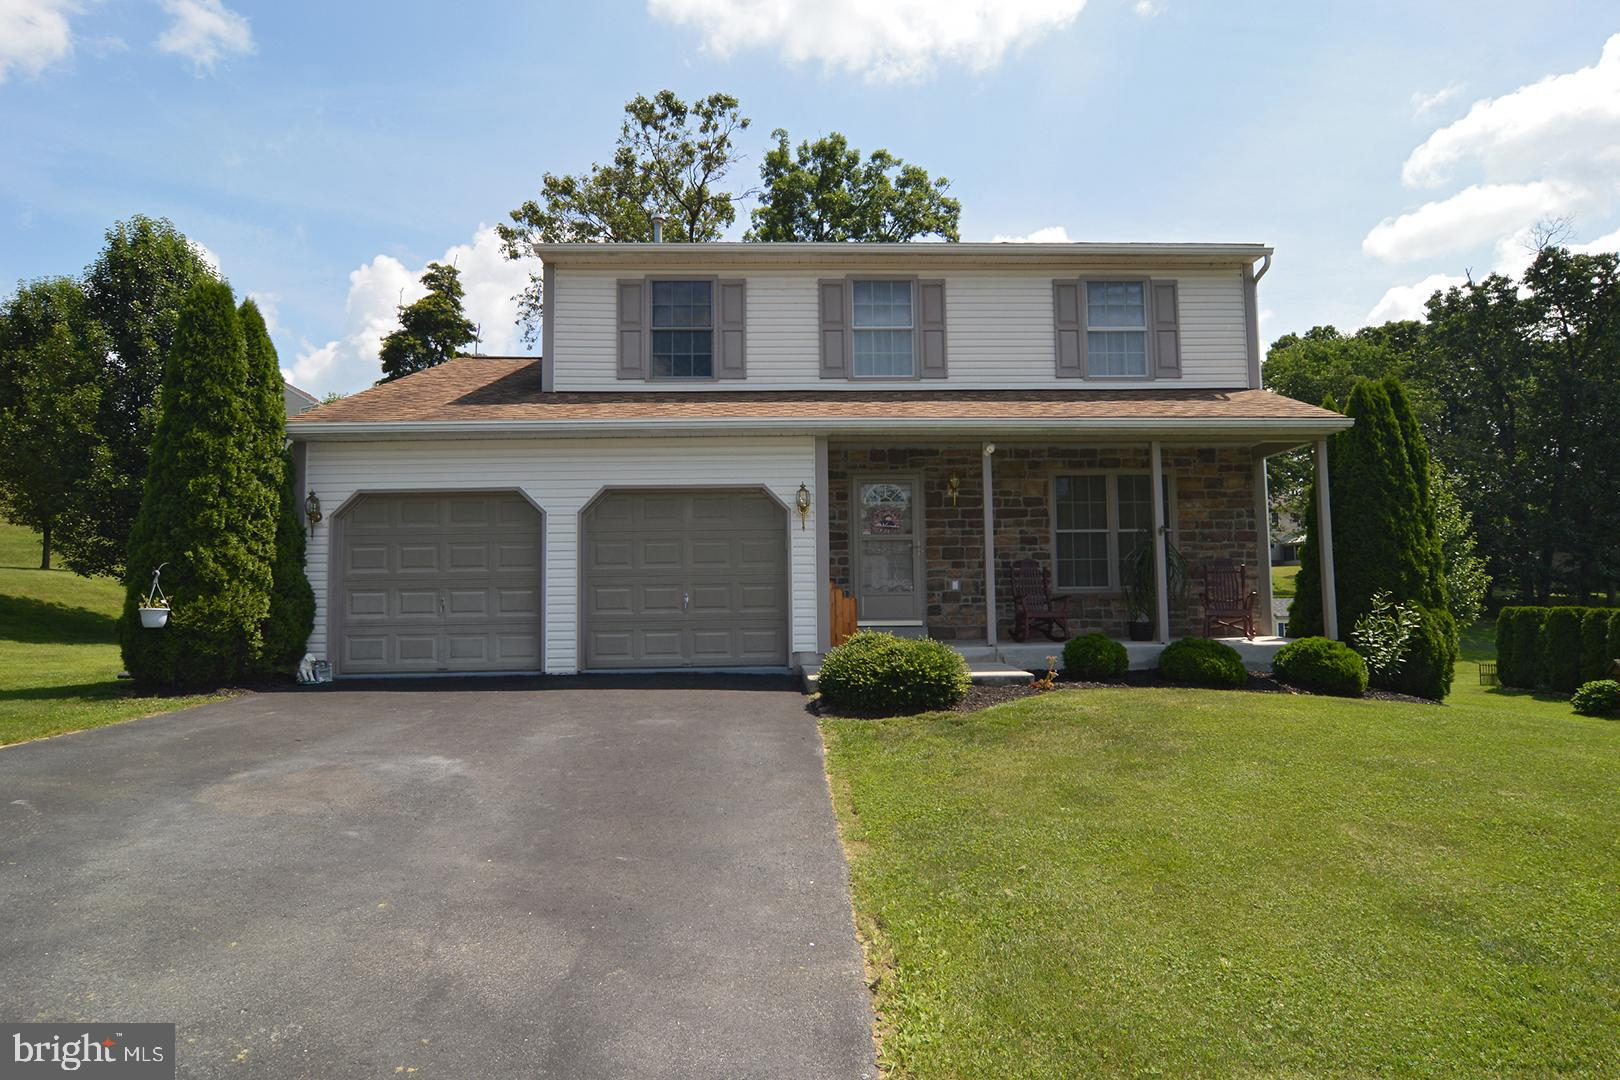 76 KELSEY DRIVE, SCHUYLKILL HAVEN, PA 17972